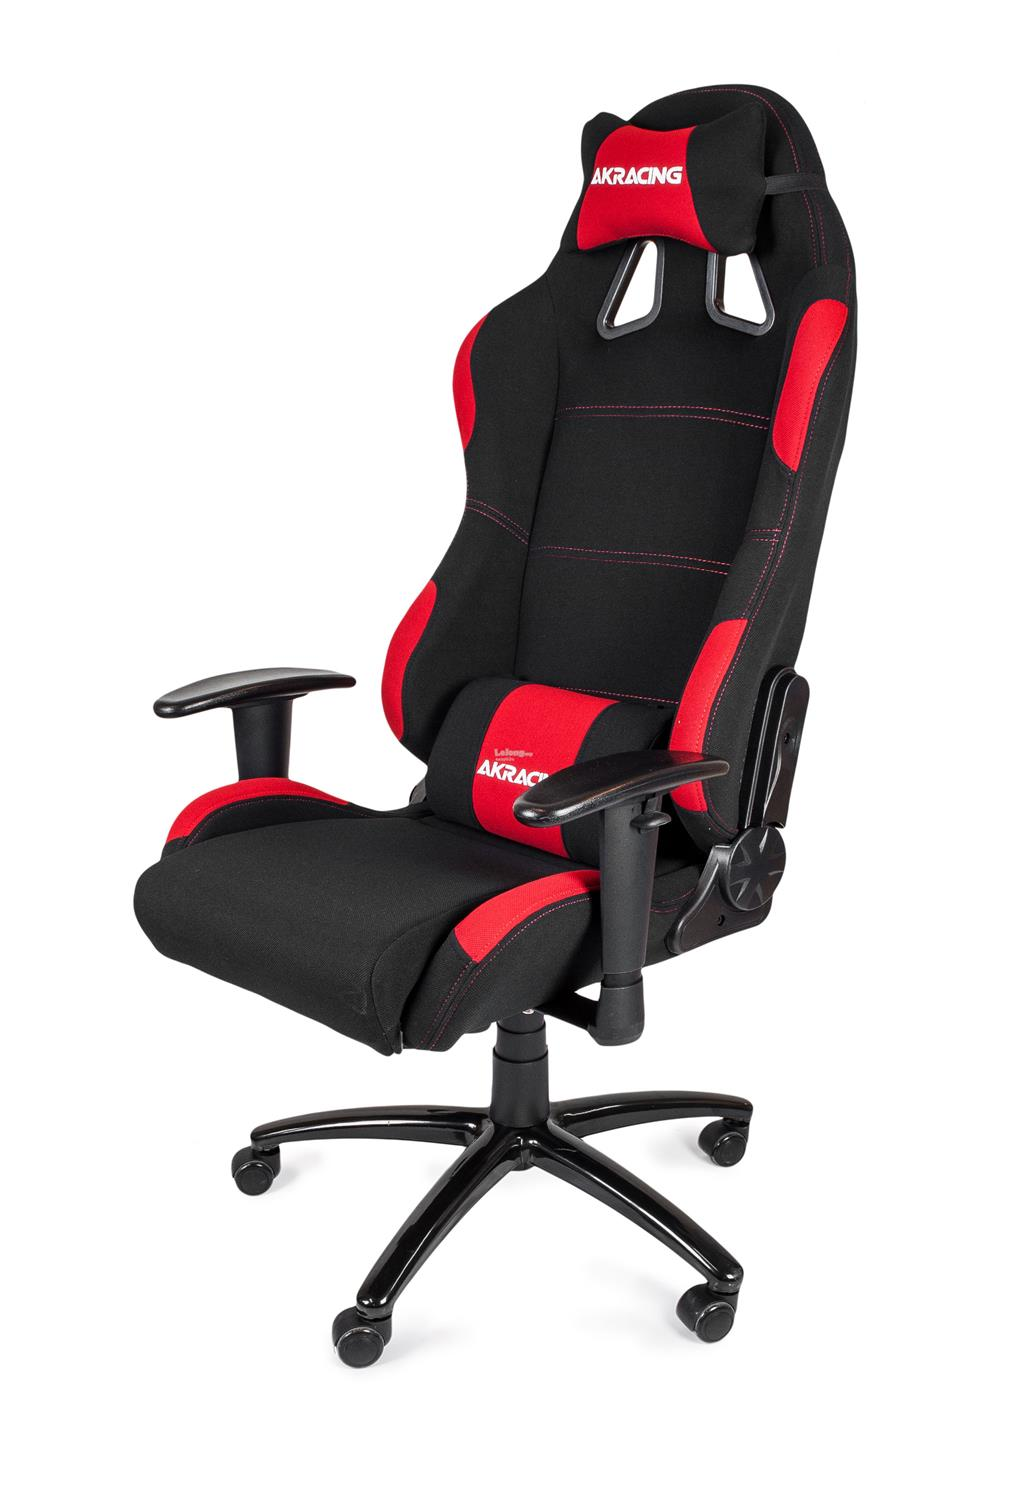 AKRACING SPEED K701A GAMING CHAIR (FABRIC) BLACK + RED